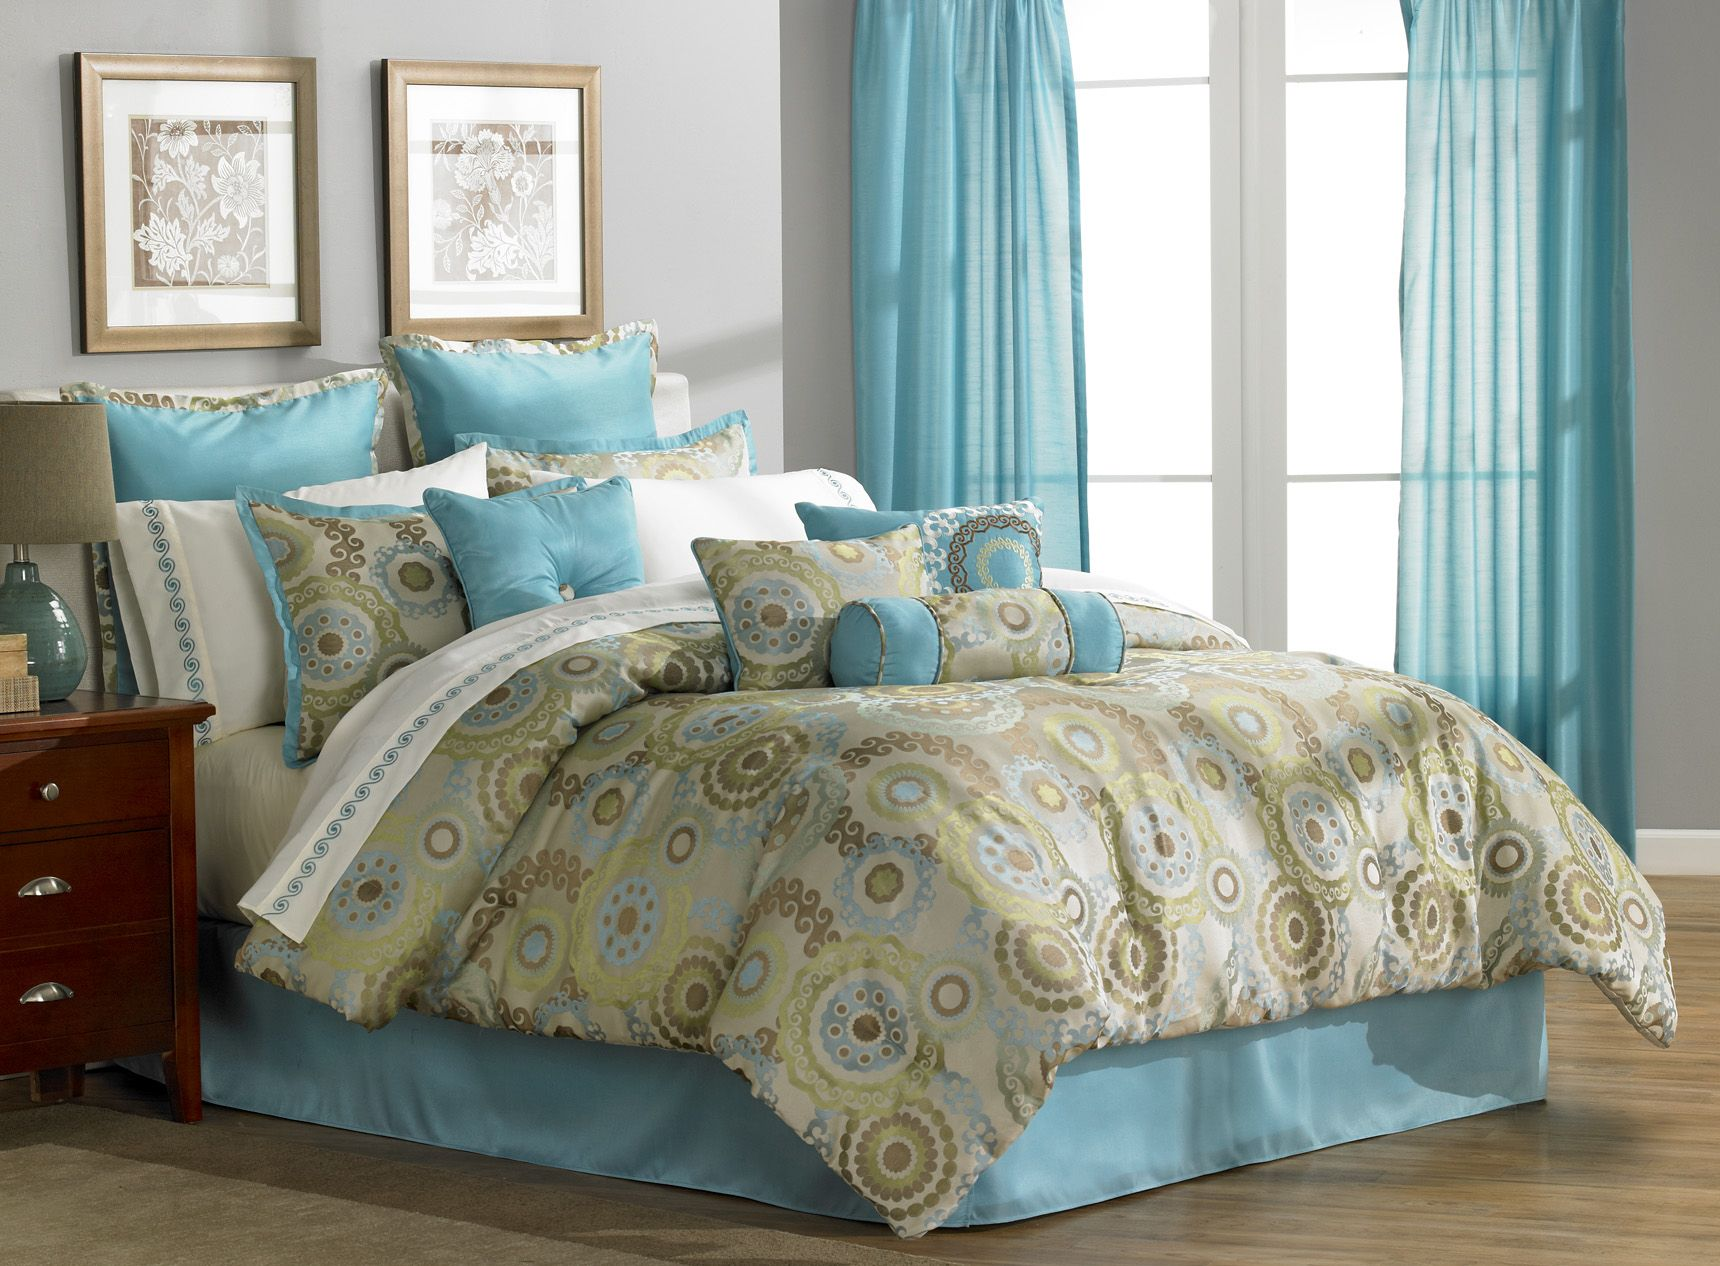 mcleland orleans queen 16 piece comforter bedroom set. Black Bedroom Furniture Sets. Home Design Ideas